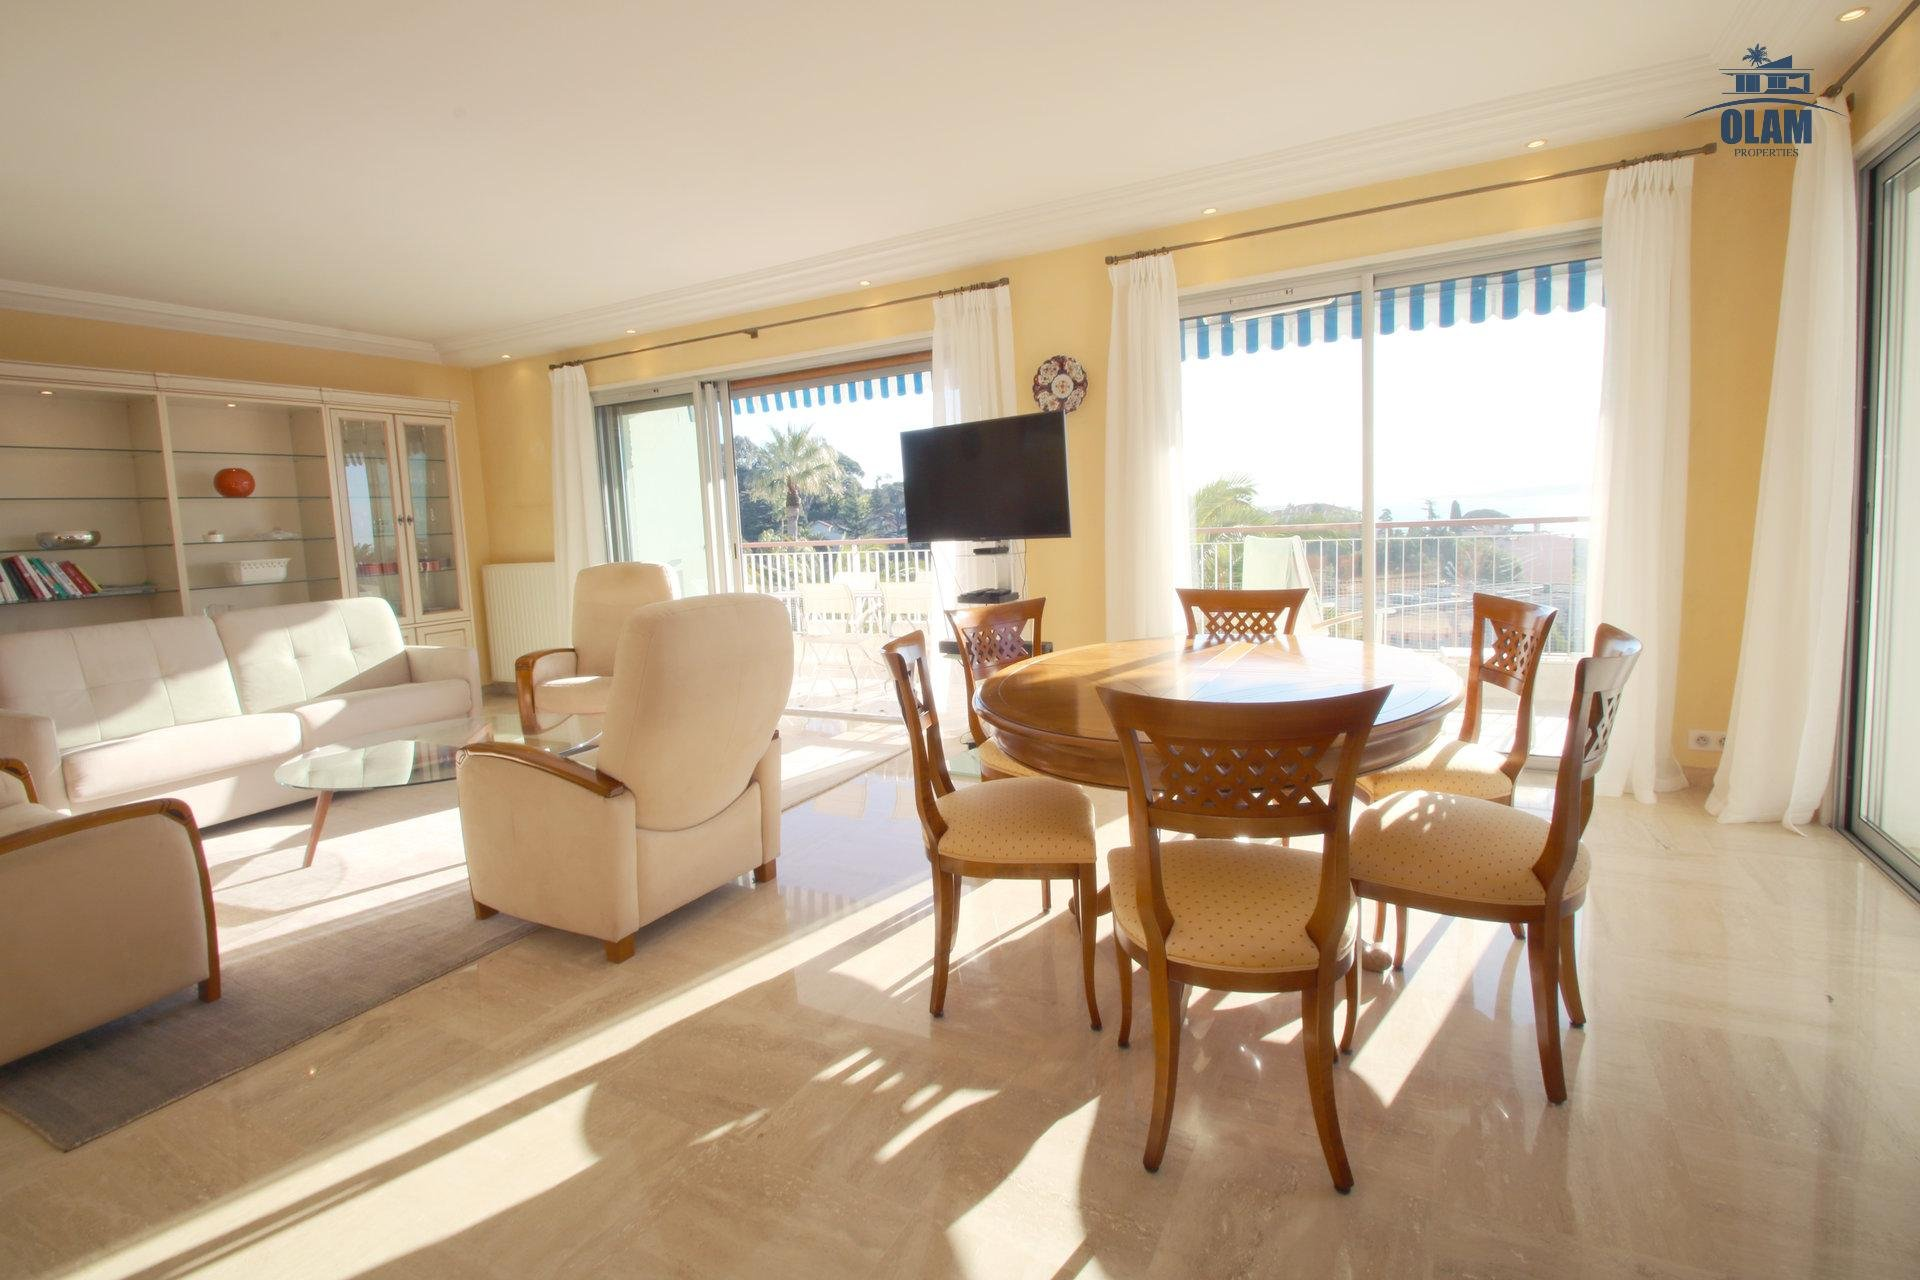 Living room, Cannes, sea view, Croisette, French Riviera